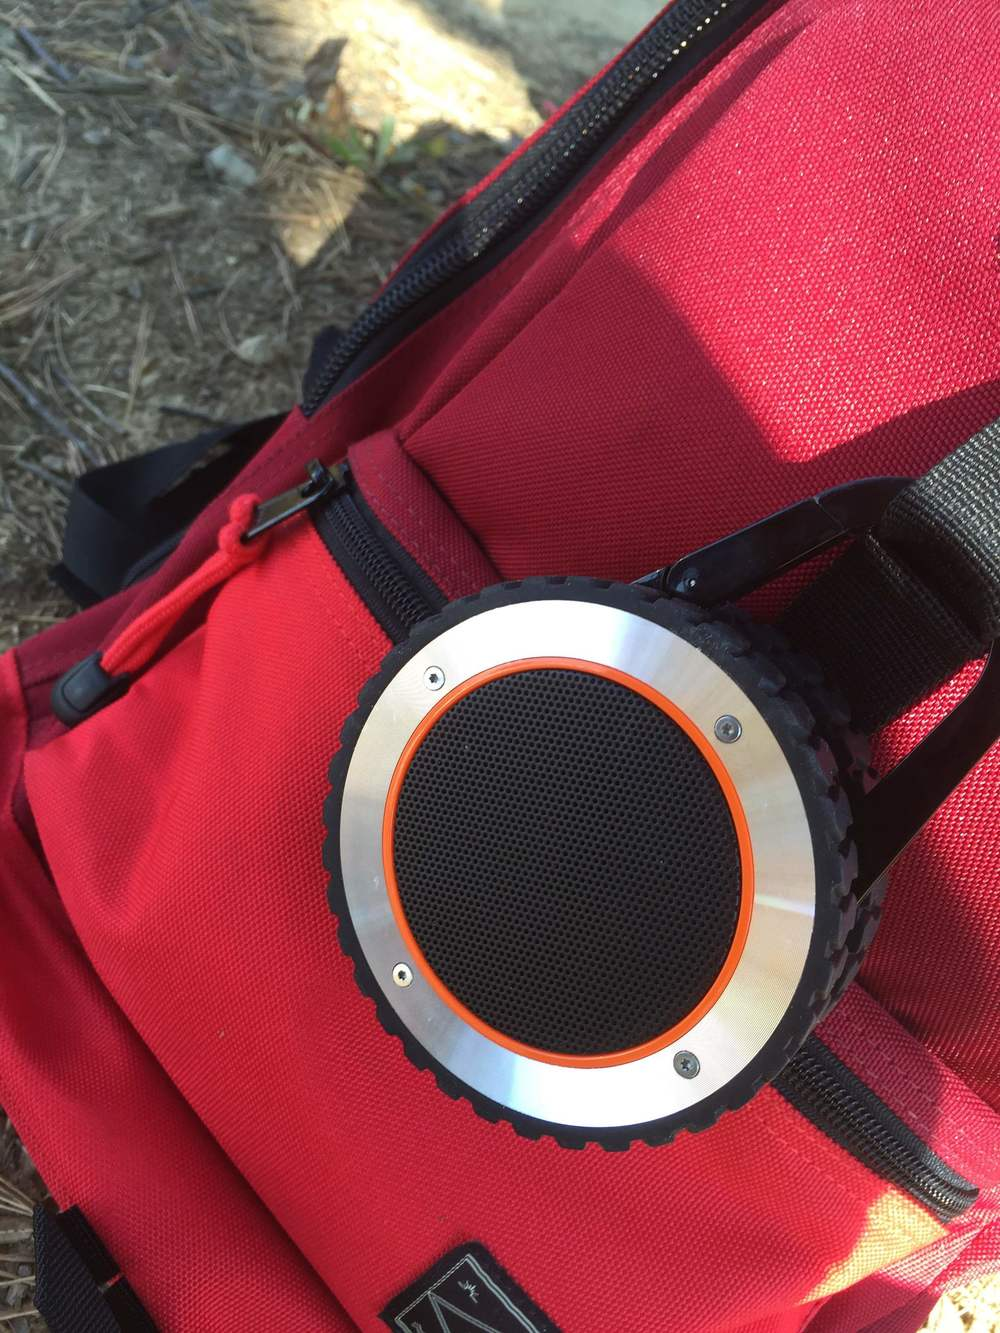 FRESHeTech All-Terrain Sound Rugged Outdoor Bluetooth Speaker Review